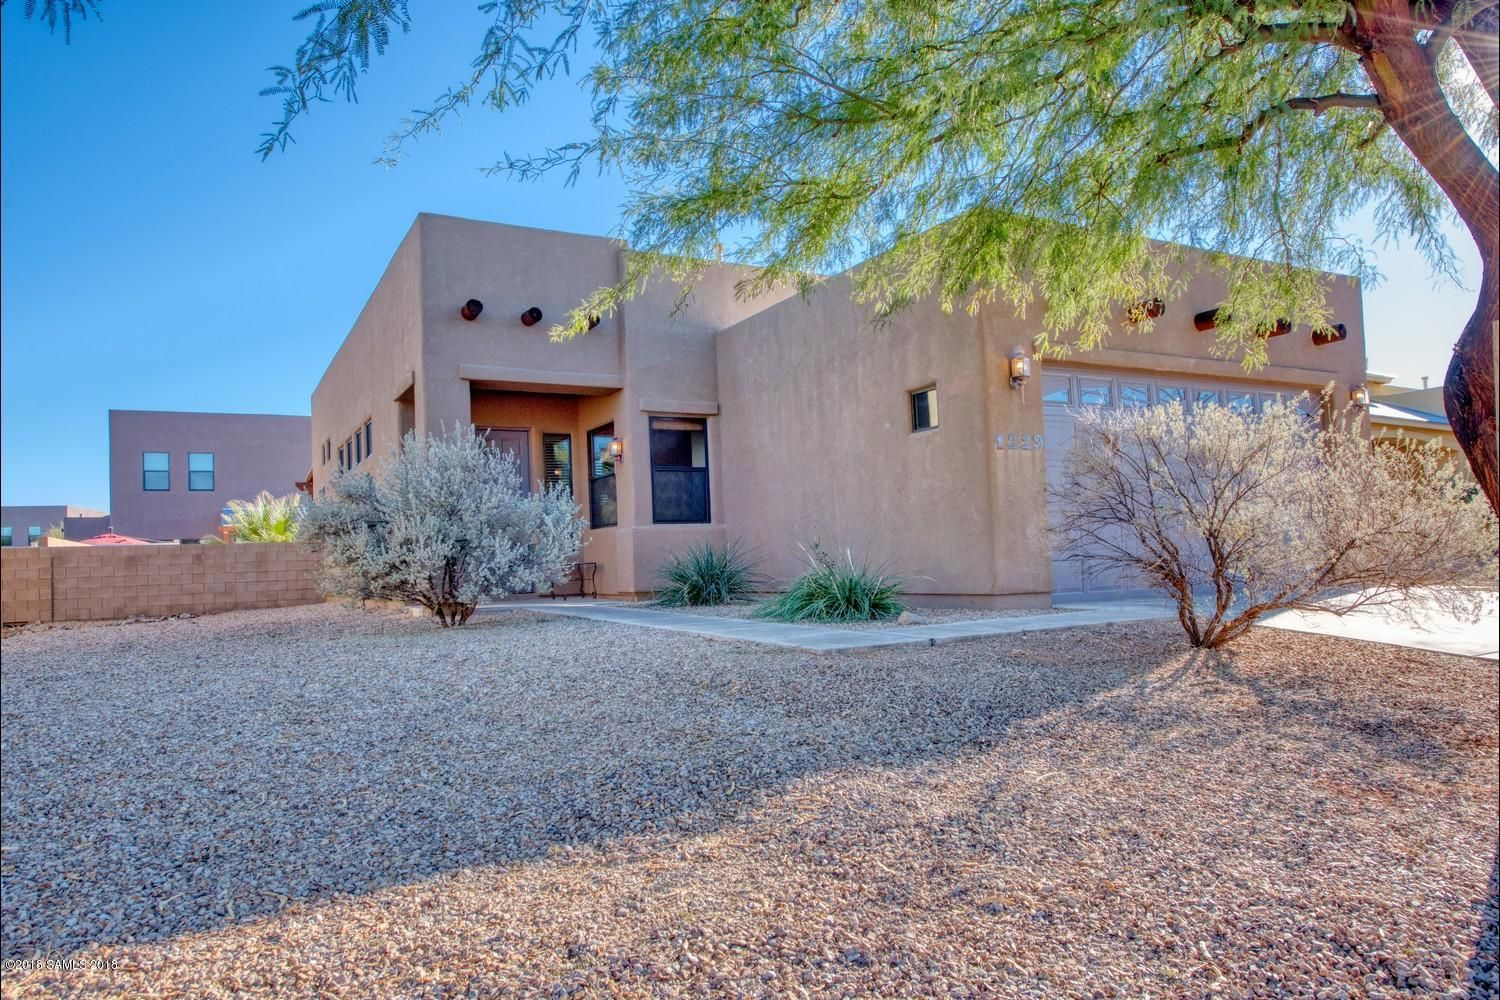 1 9 19 Sierra Vista Easy Access To Major Roadway Leading To Benson Tucson Bisbee Or Tombstone This Home Is Close T Real Estate Fort Huachuca House Styles